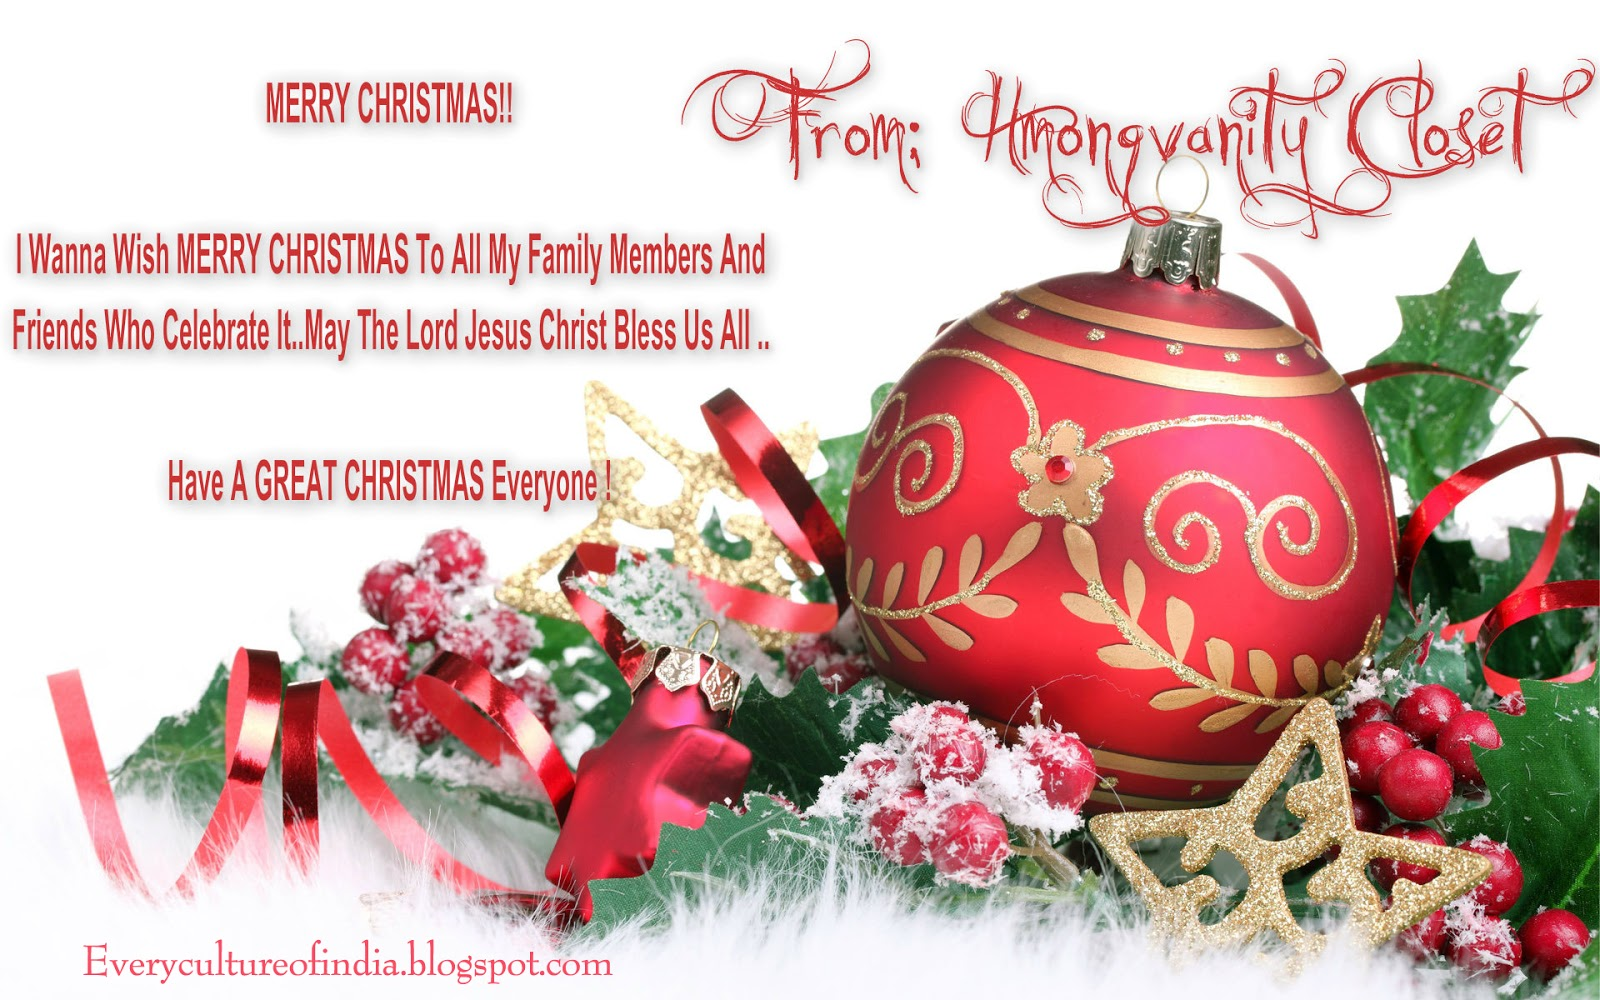 Merry Christmas Christmas Celebration In India Significance Of